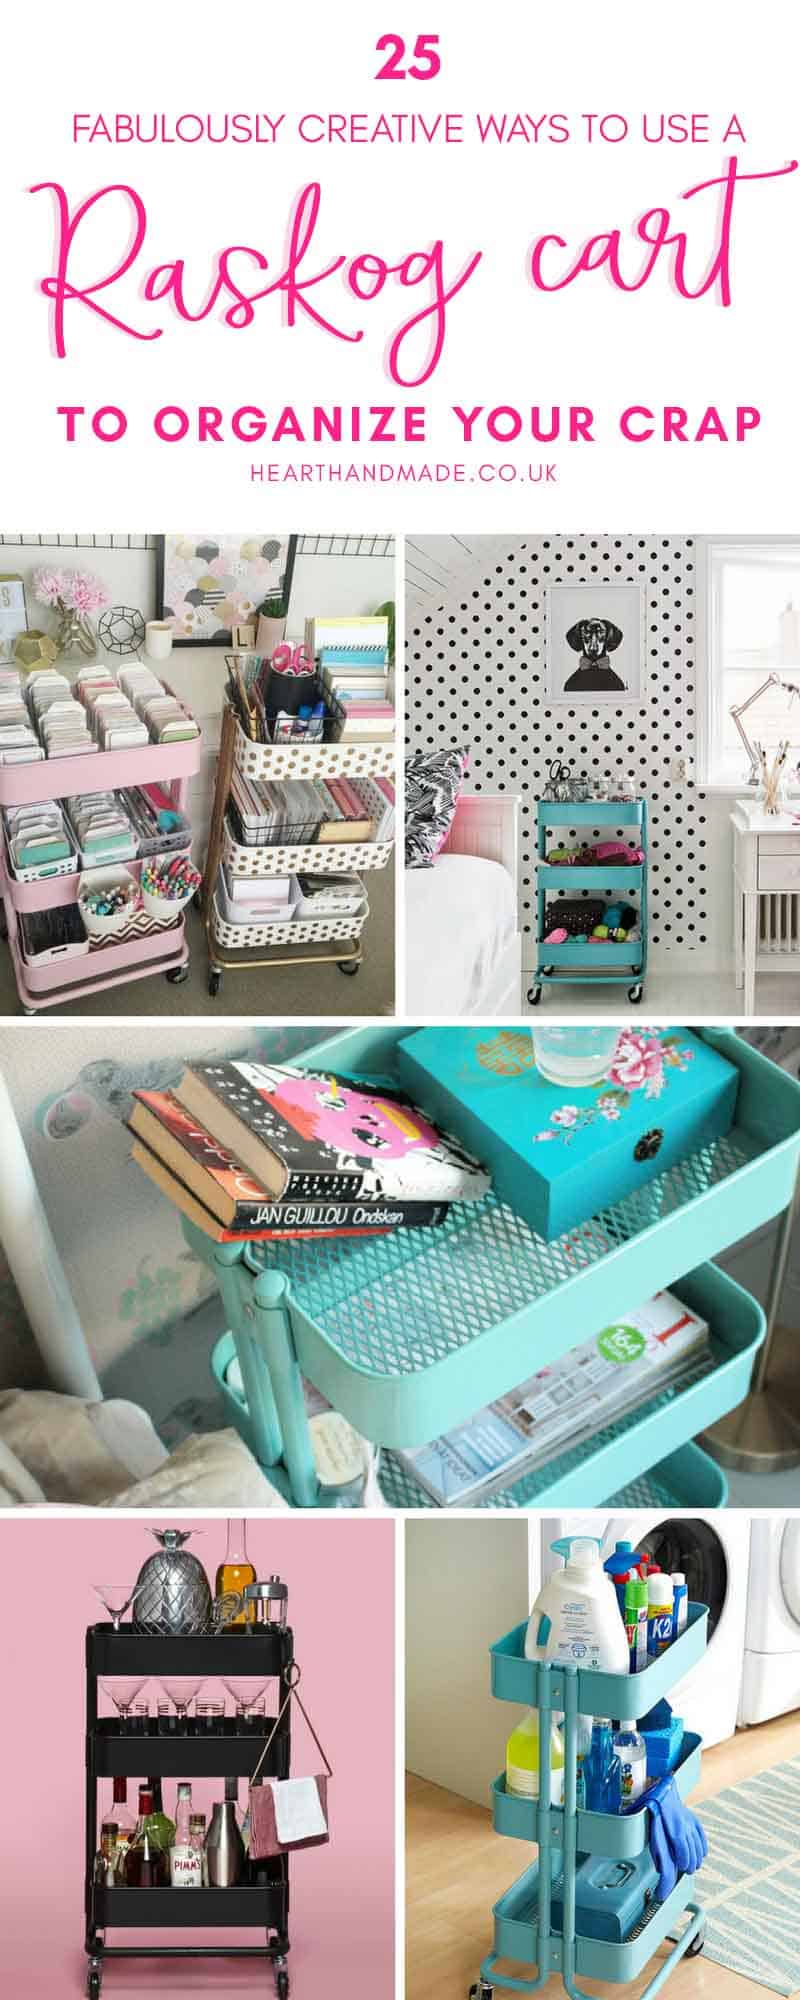 Are you trying to decide whether or not you want to buy a Raskog cart from Ikea? I love this cleaning cart organizing hack! There are so many excellent ways to organize using a Raskog cart & you can see 25 awesome ways to organize kitchen, organize bedroom or any room in your house! My favourite way to use a Raskog cart is to organize art supplies. #organize #organizing #homedecor #homedecorideas #ikea #ikeaideas #hhmuk